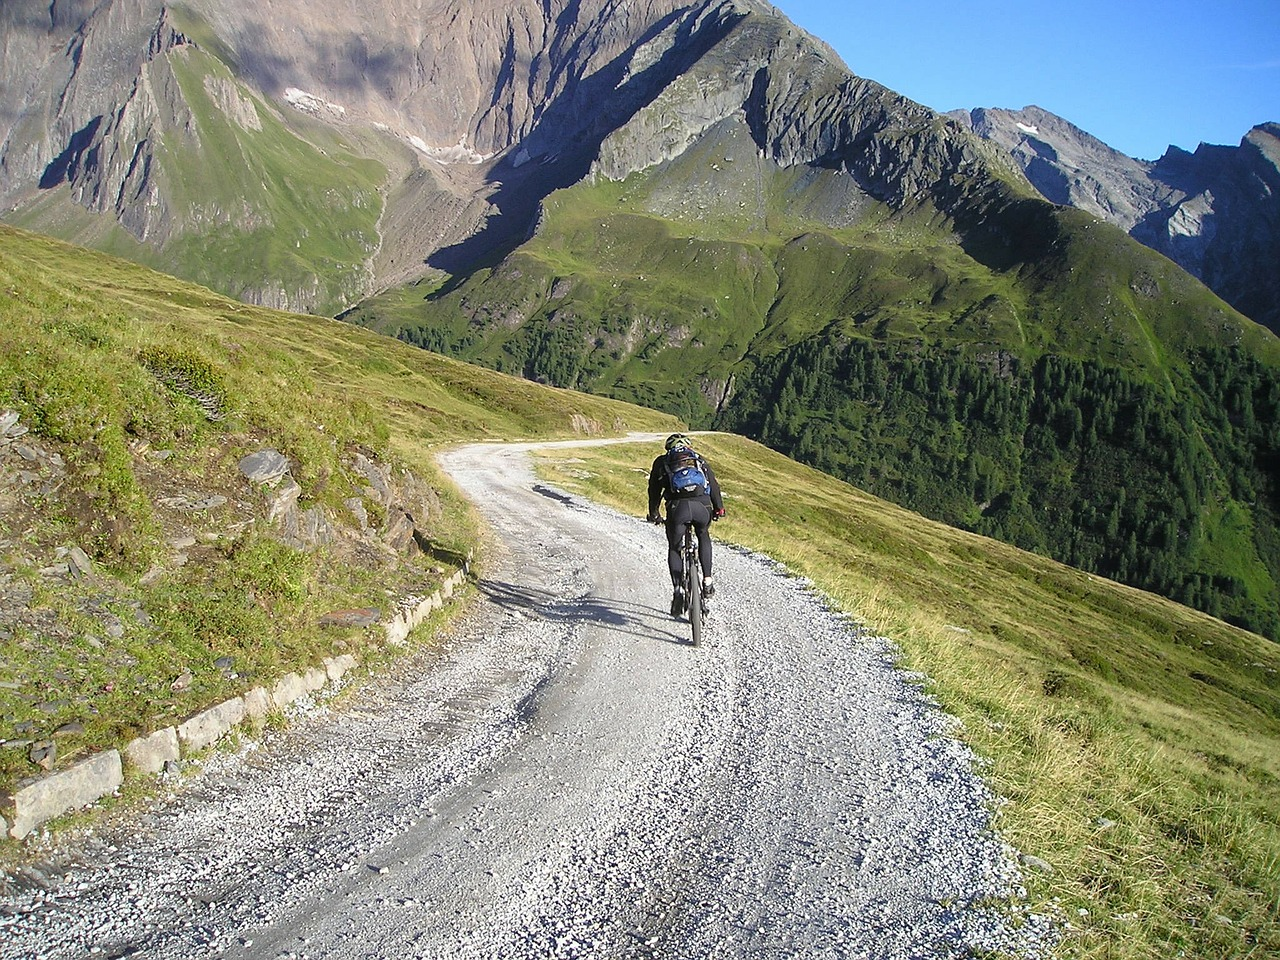 zillertal zillertaler alpen mountain bike free photo